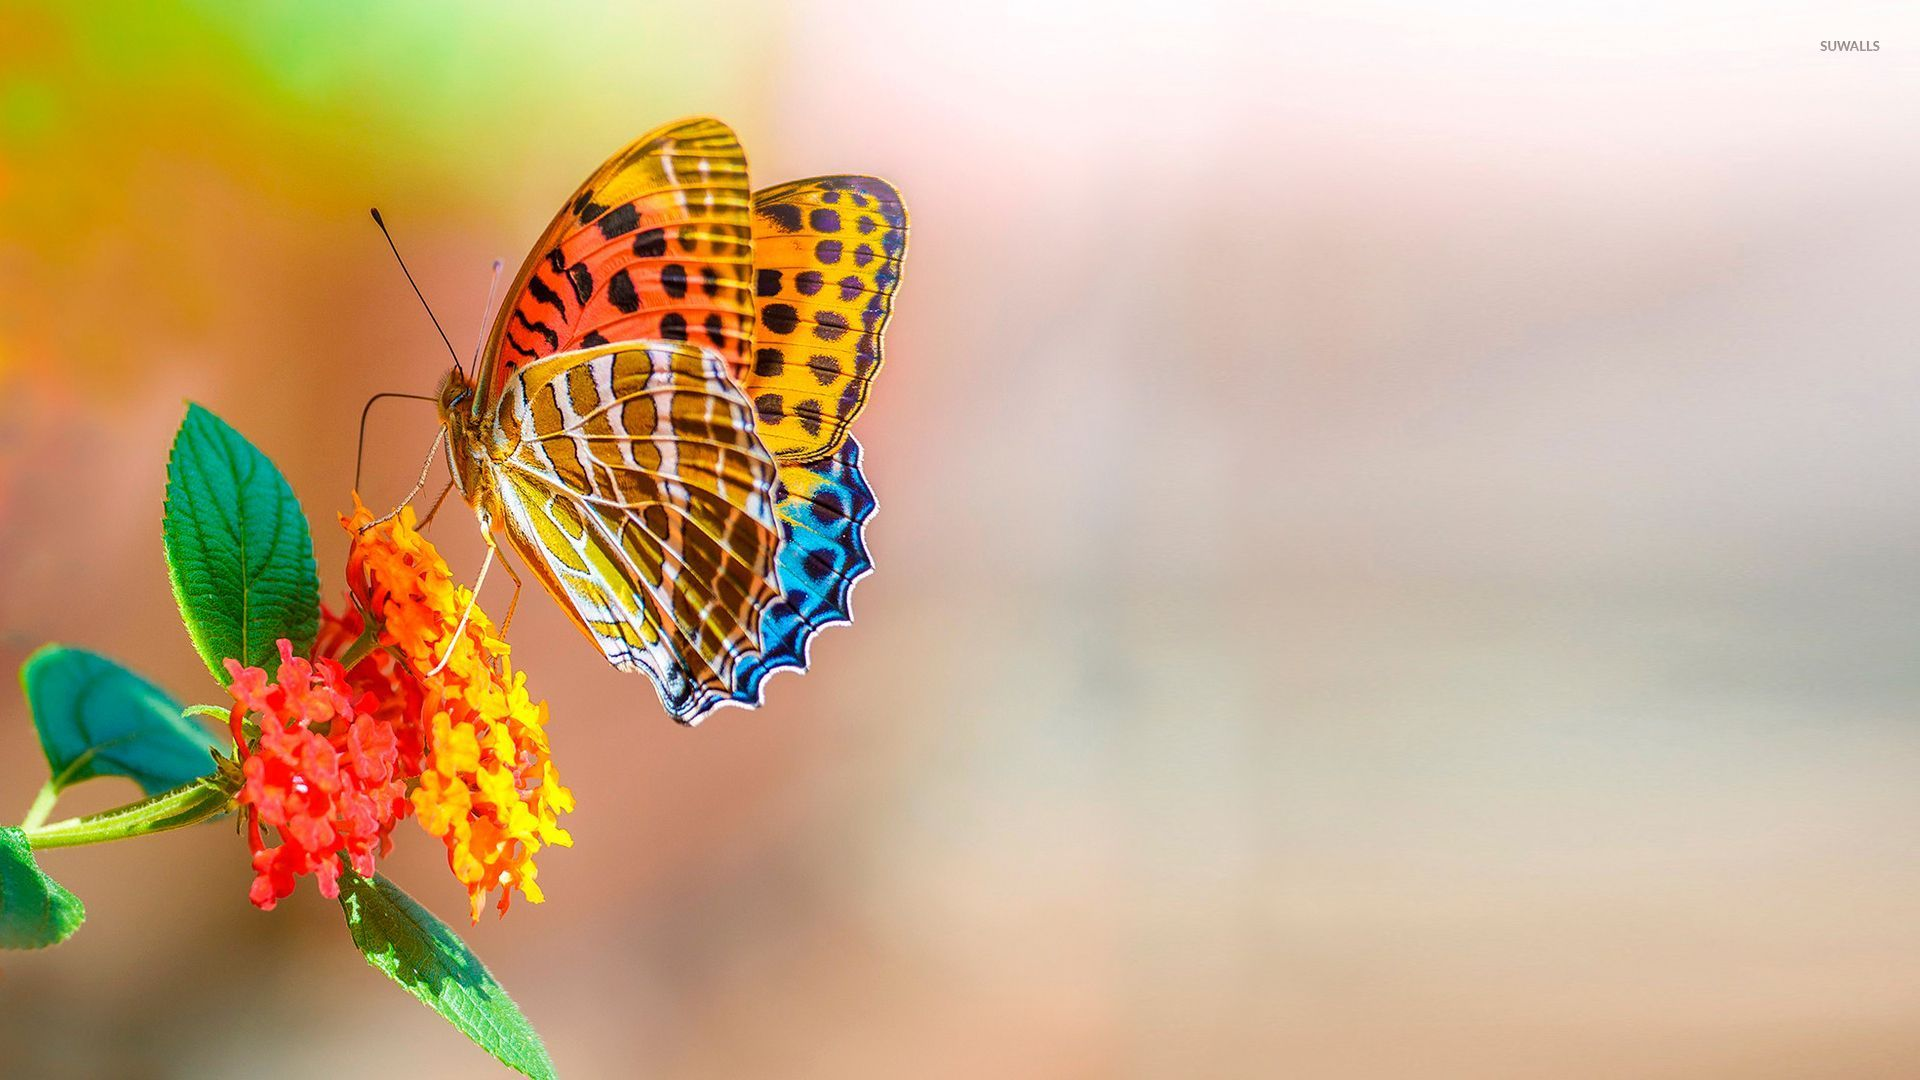 Colorful butterfly wallpaper - Animal wallpapers - #46510